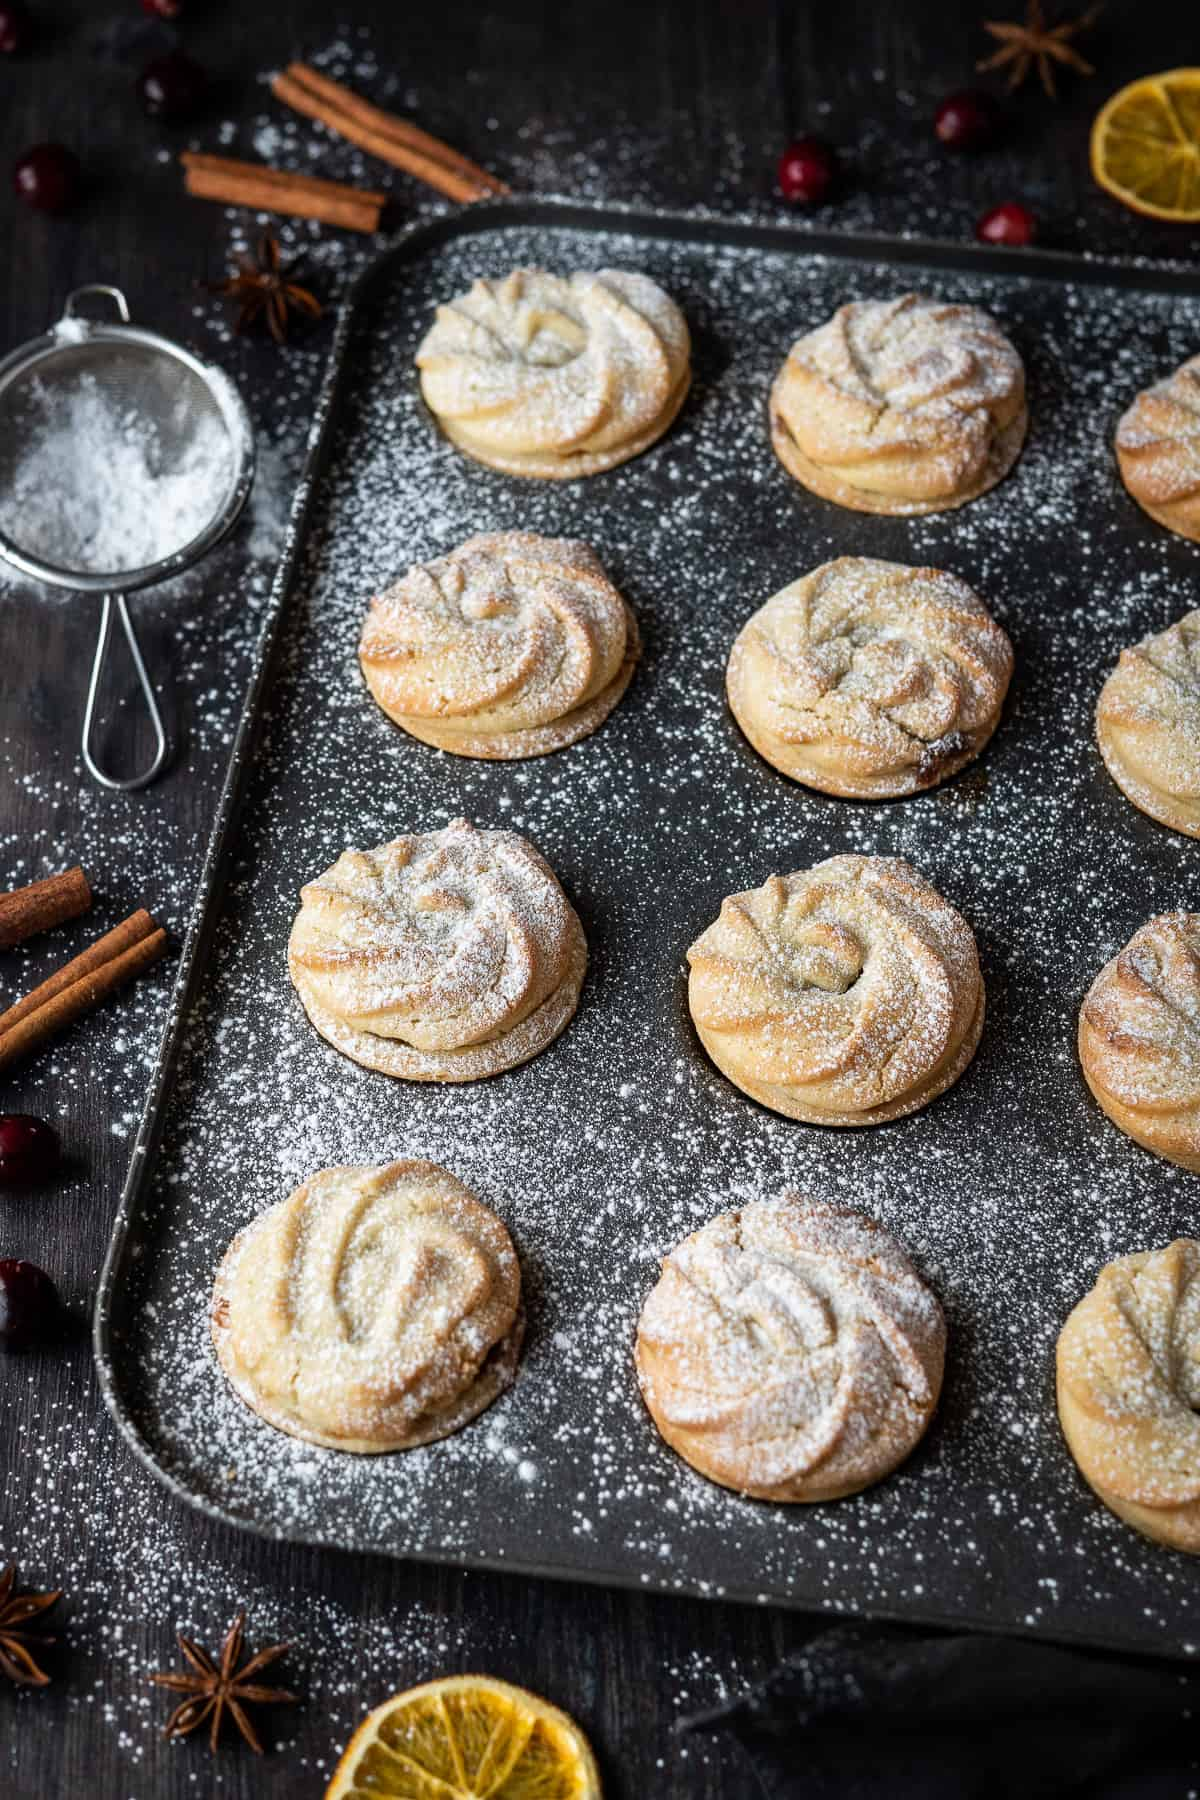 Vegan viennese whirl mince pies in a metal bun tin on a wooden table with a mini sieve full of icing sugar, whole spices and dried orange slices.